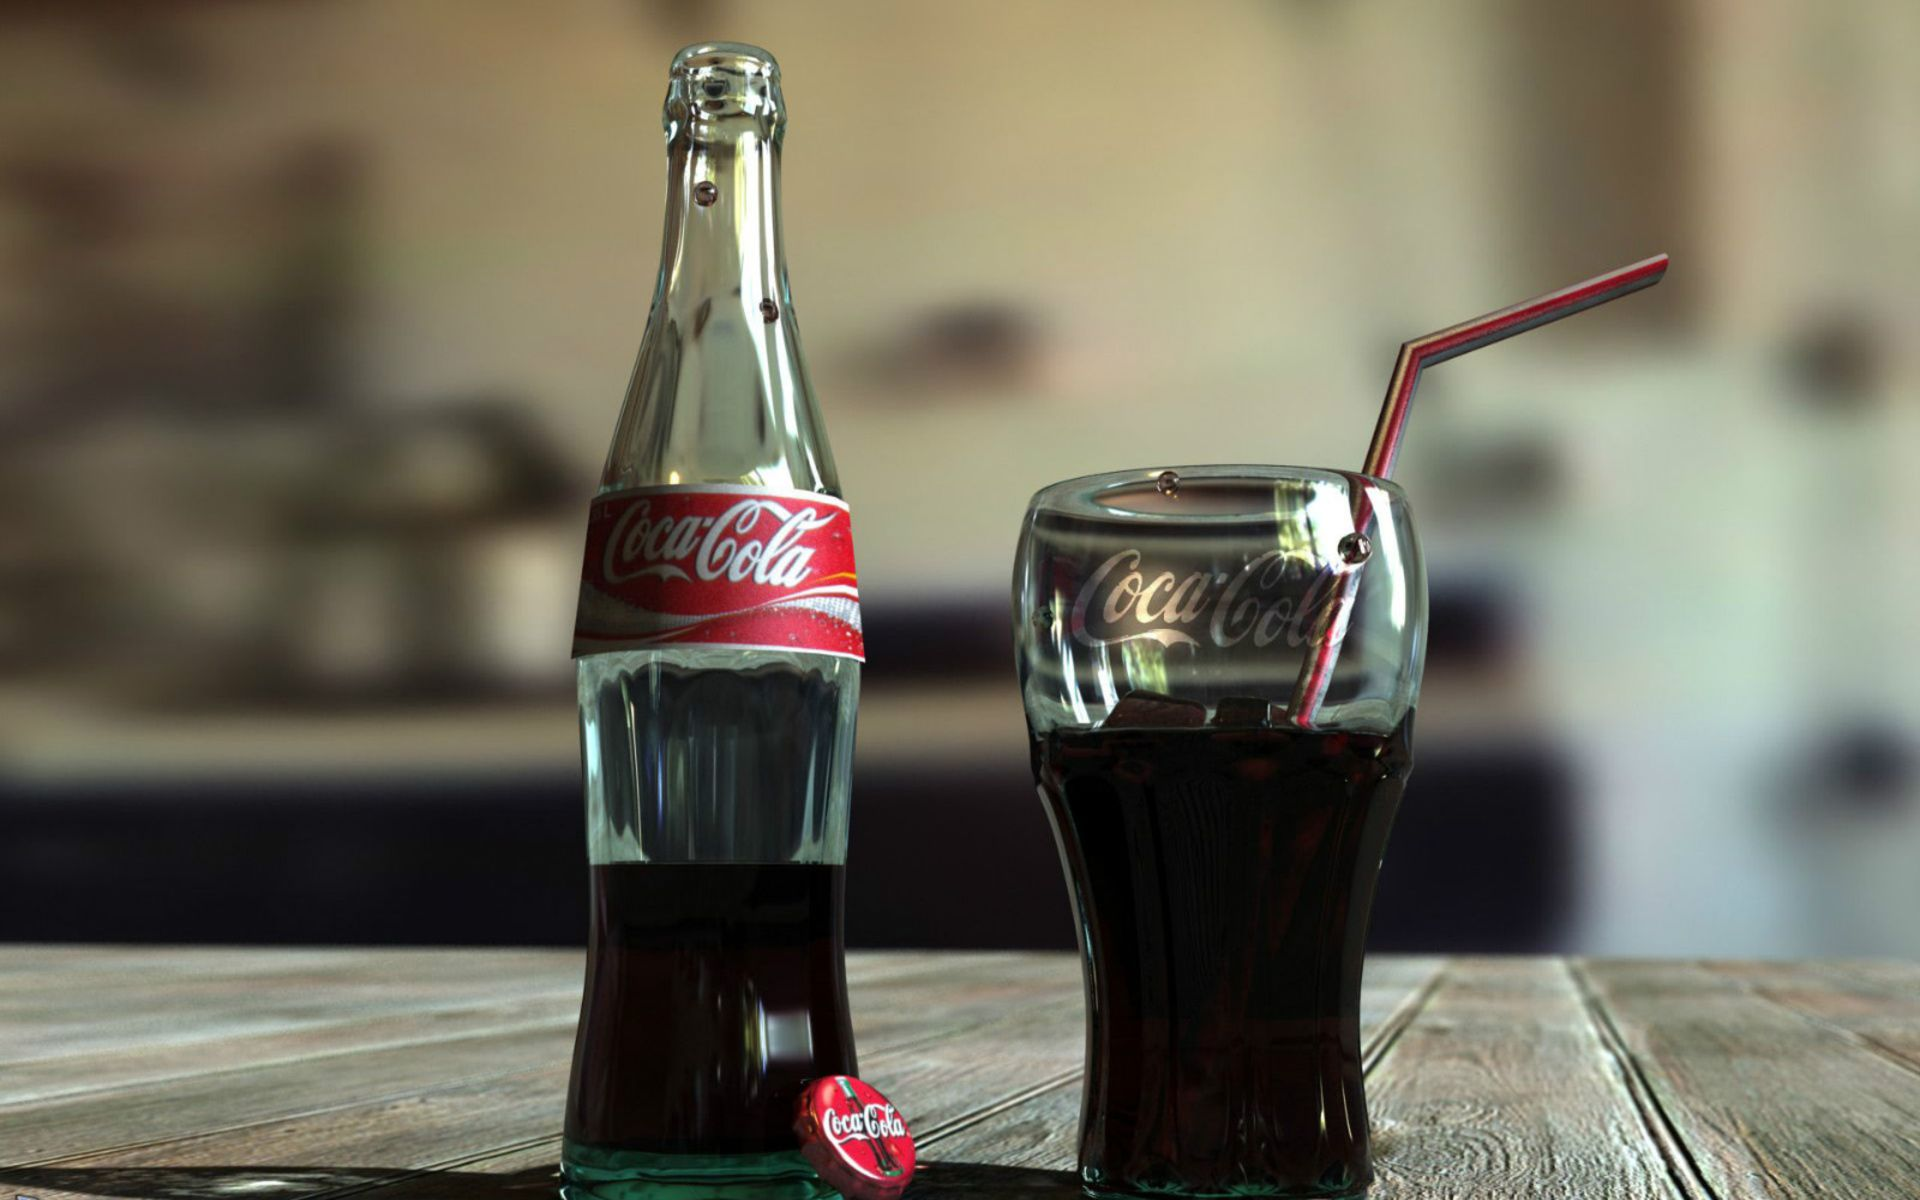 Coca-Cola Drink Bottle